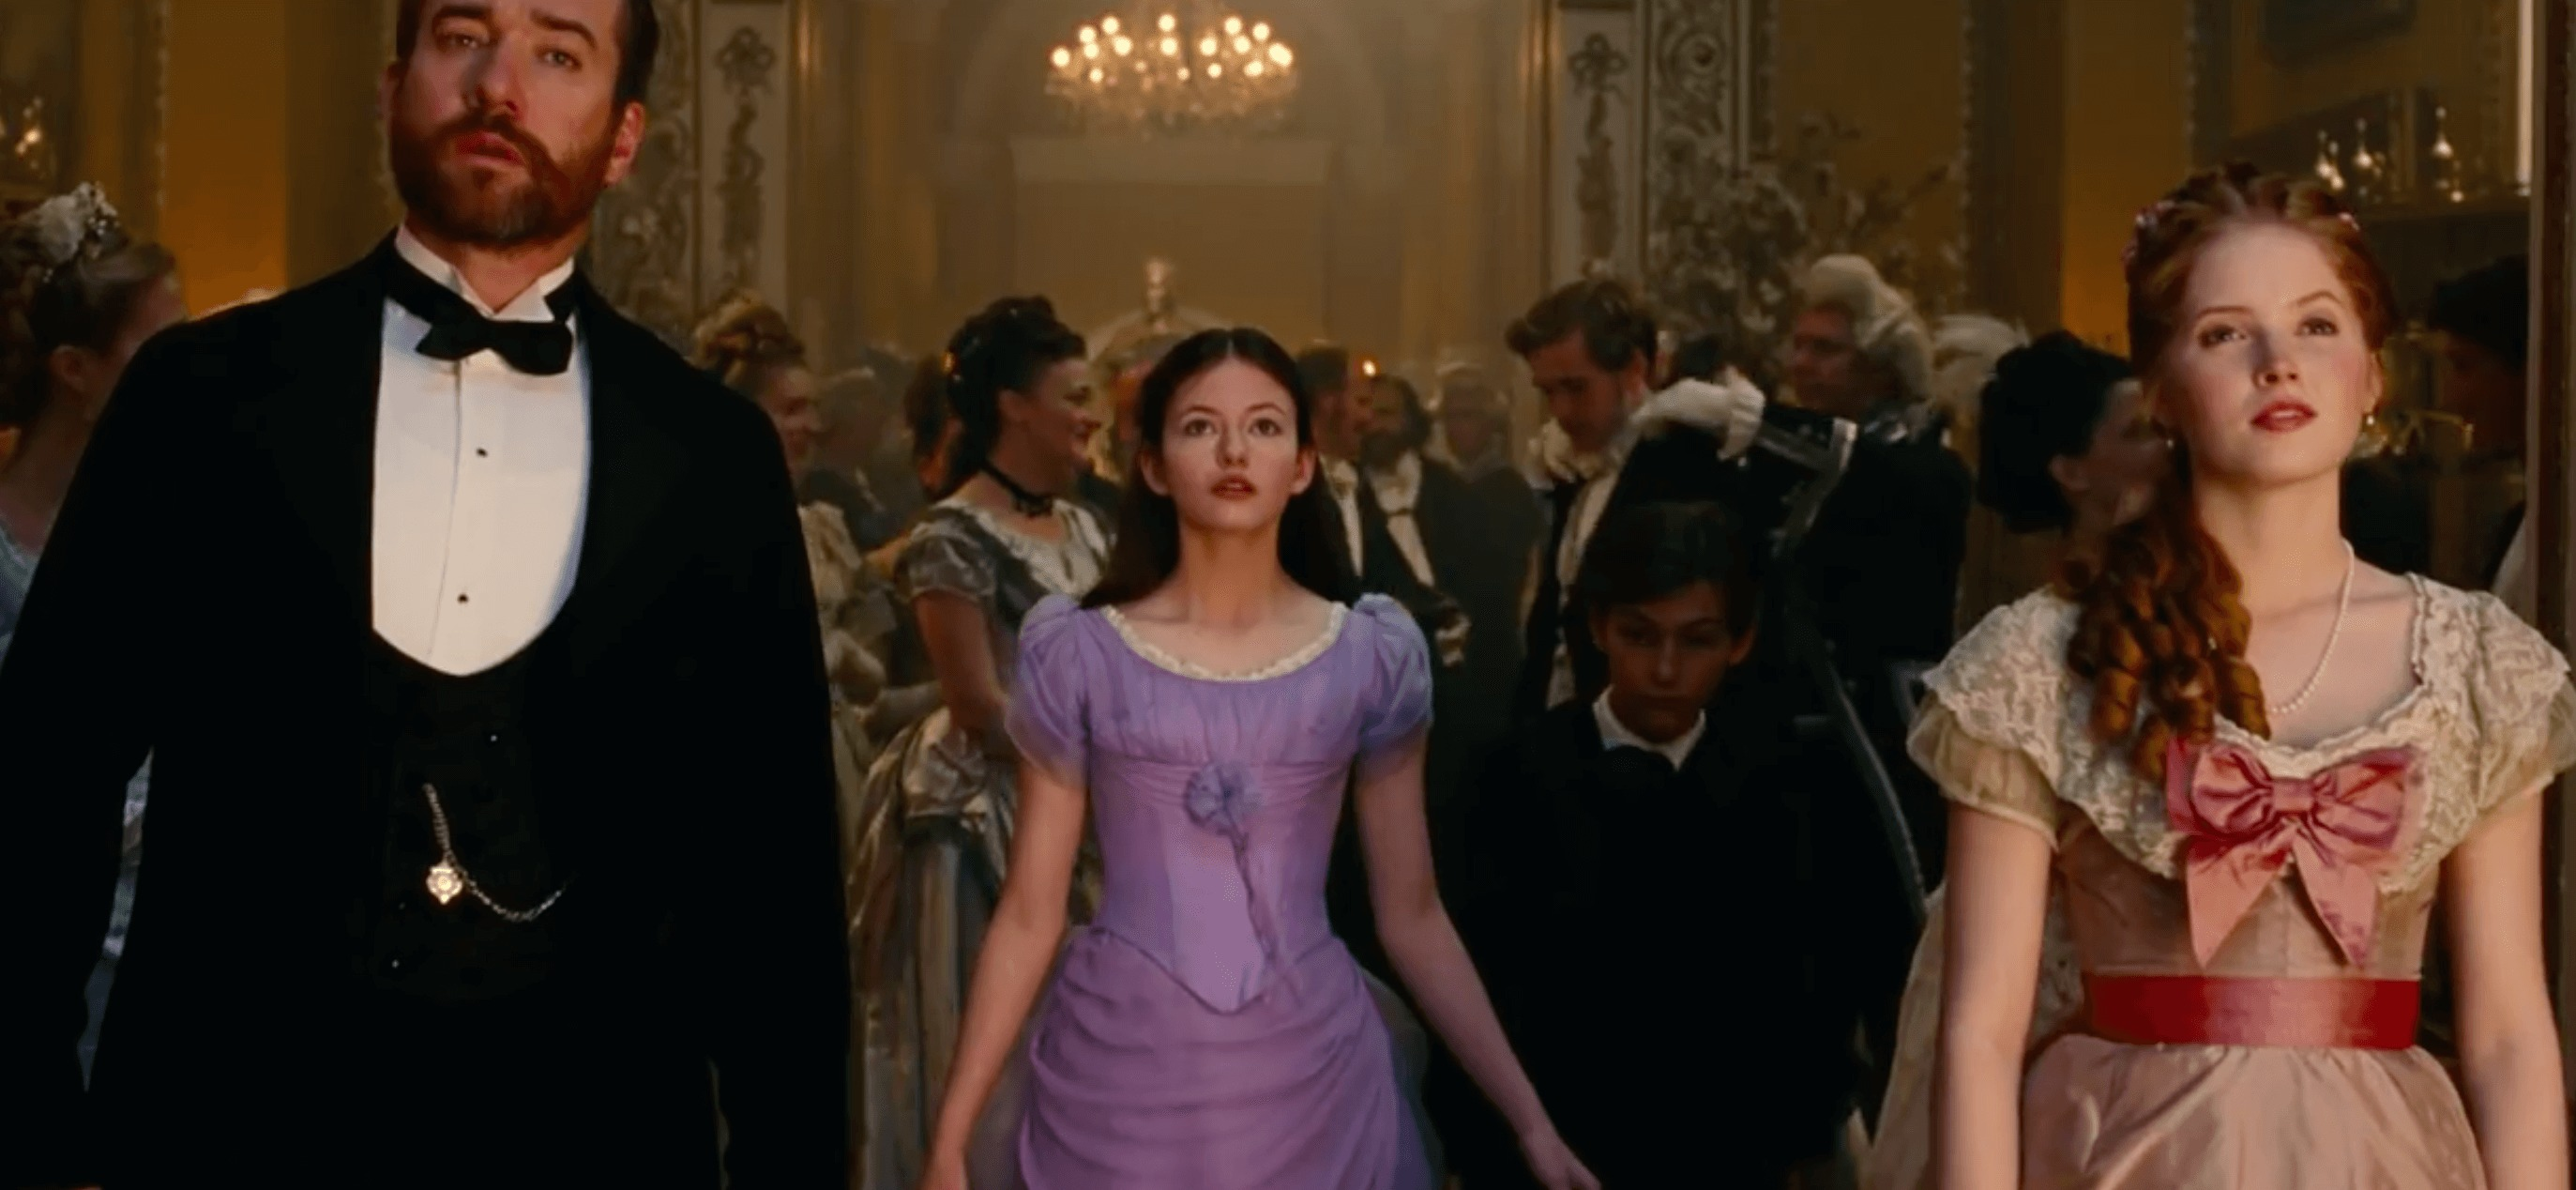 A young girl in a purple ballgown looks up in awe as she enters a Christmas party.